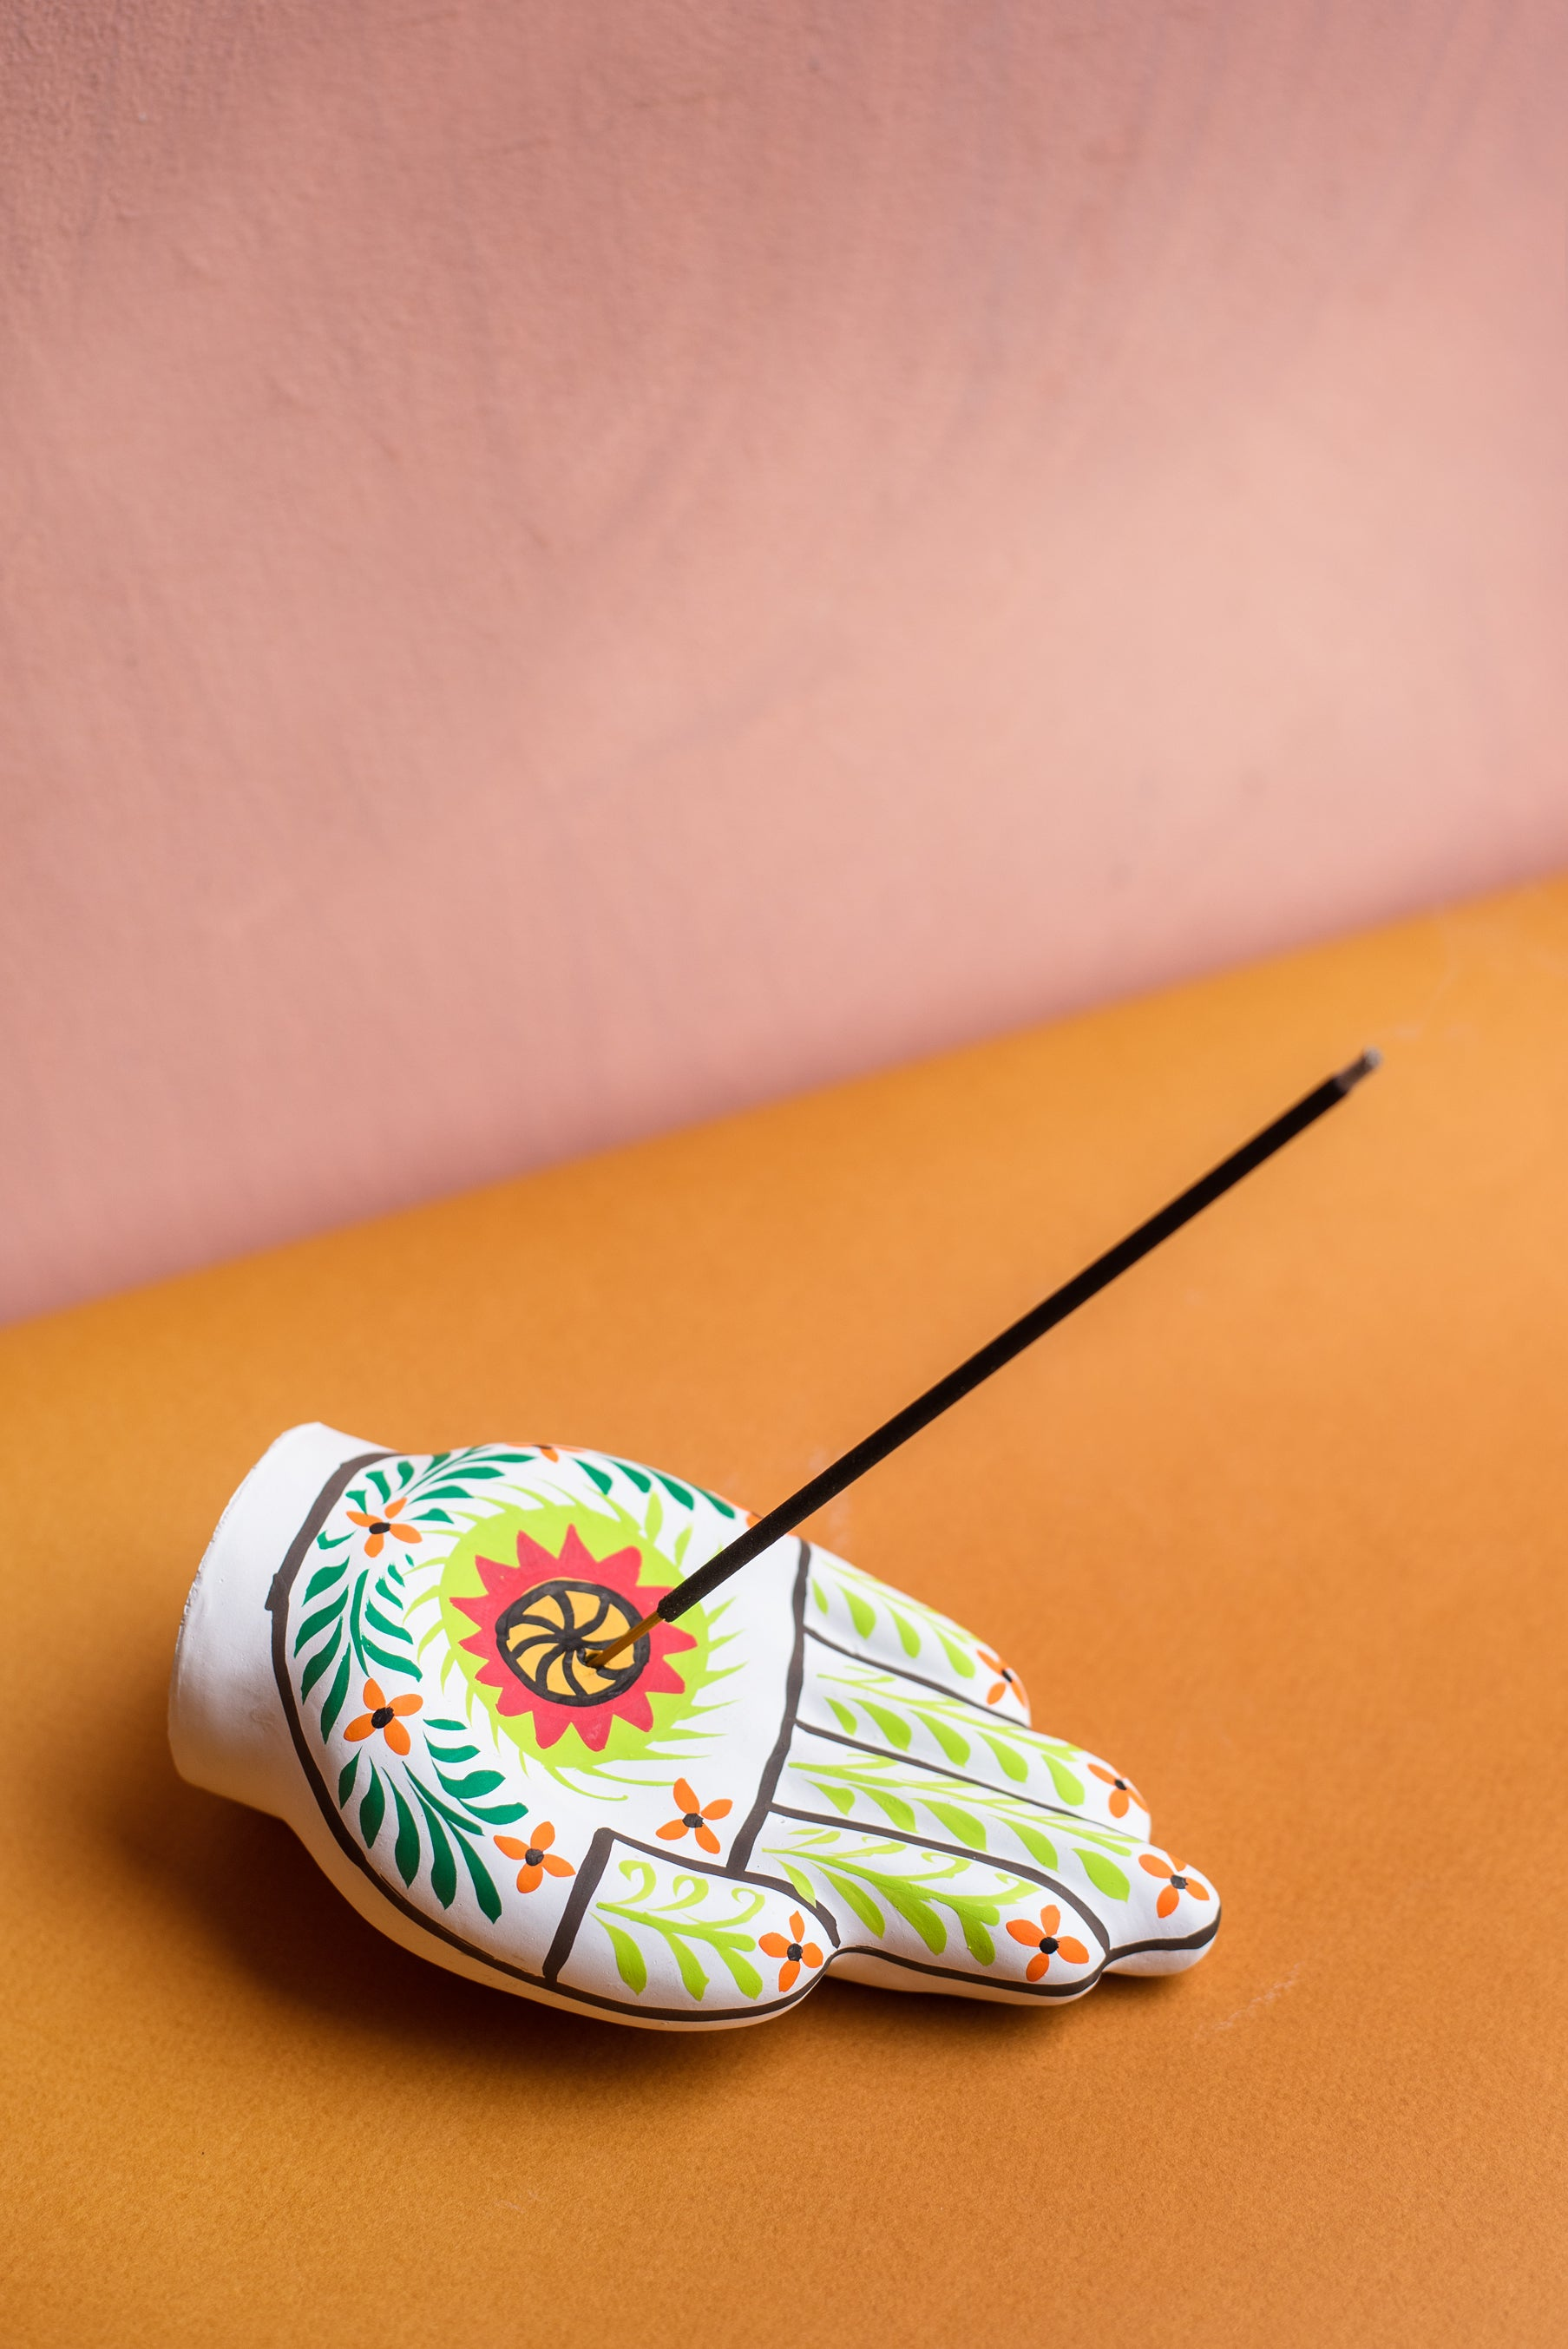 Spiral Hand Incense Holder Hand Painted Clay Ian Snow Ltd